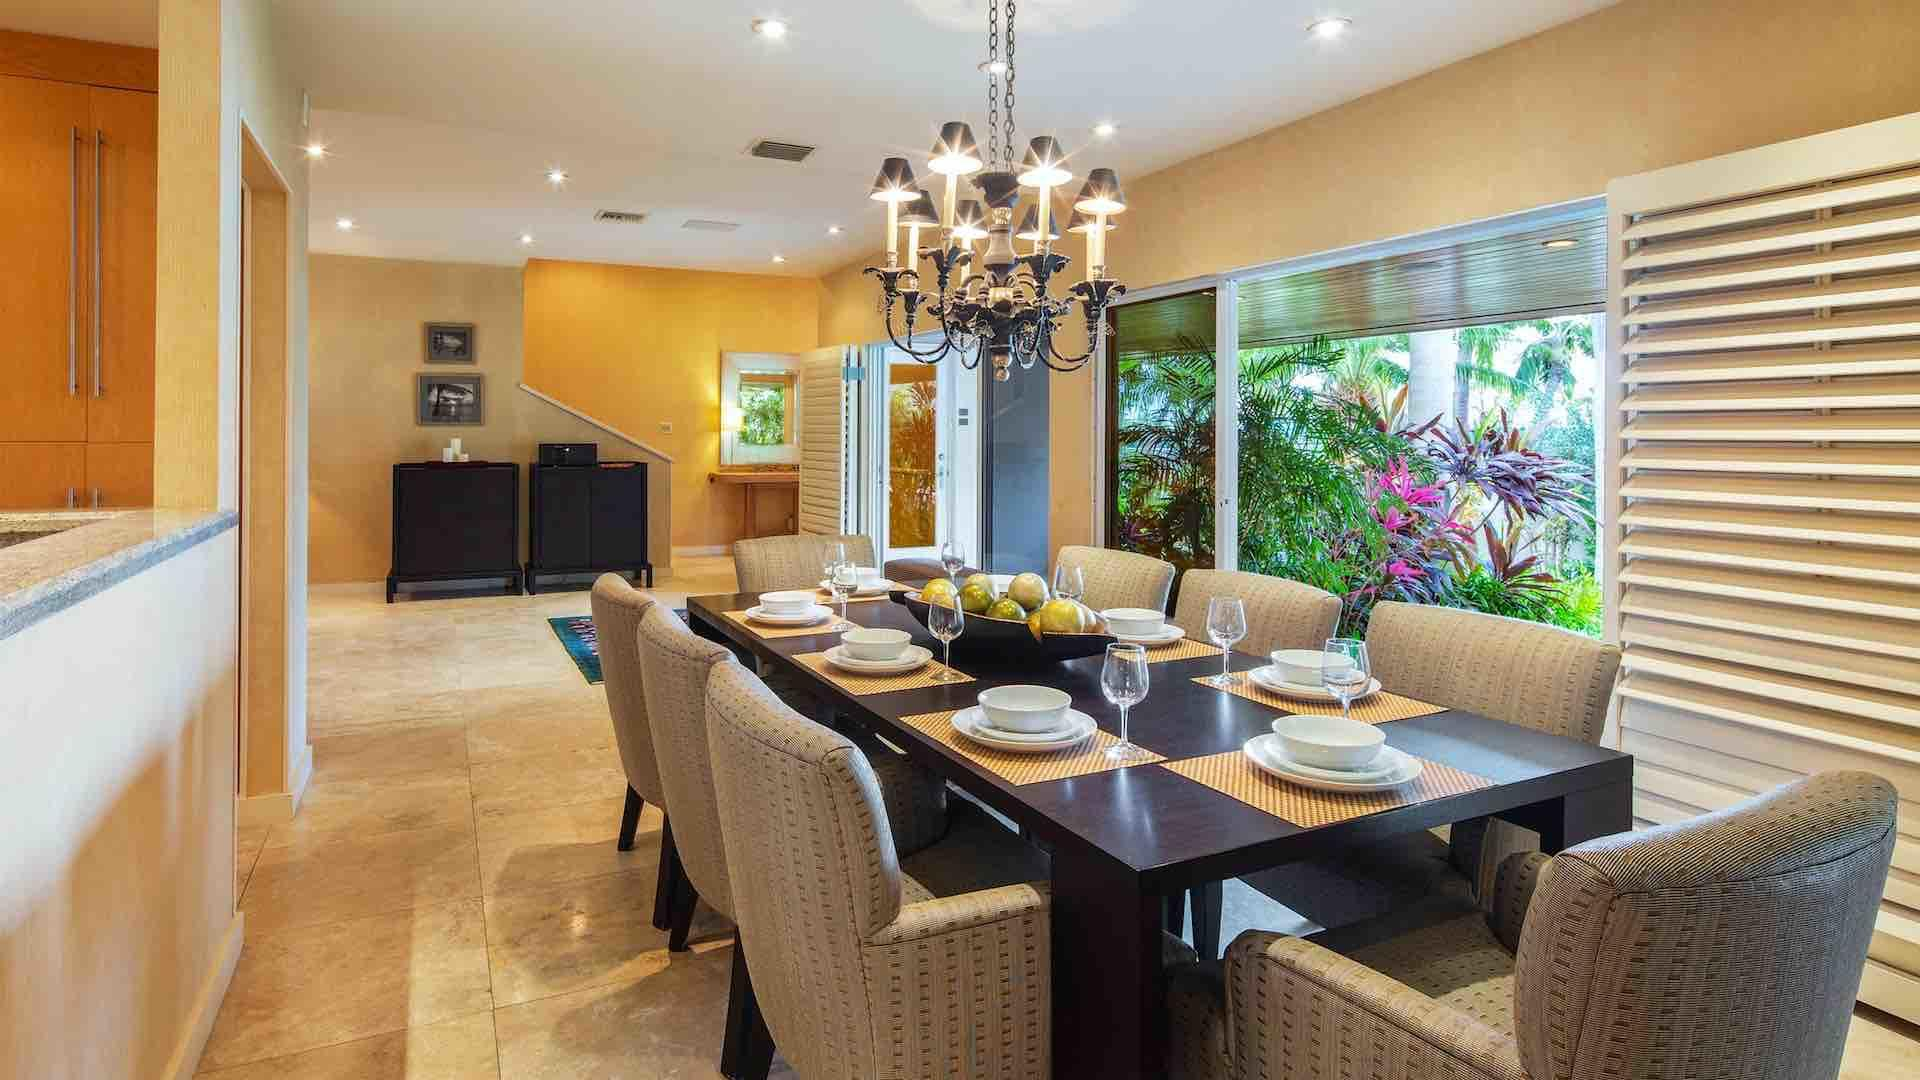 The formal dining room has a large dining table with eight upholstered chairs…